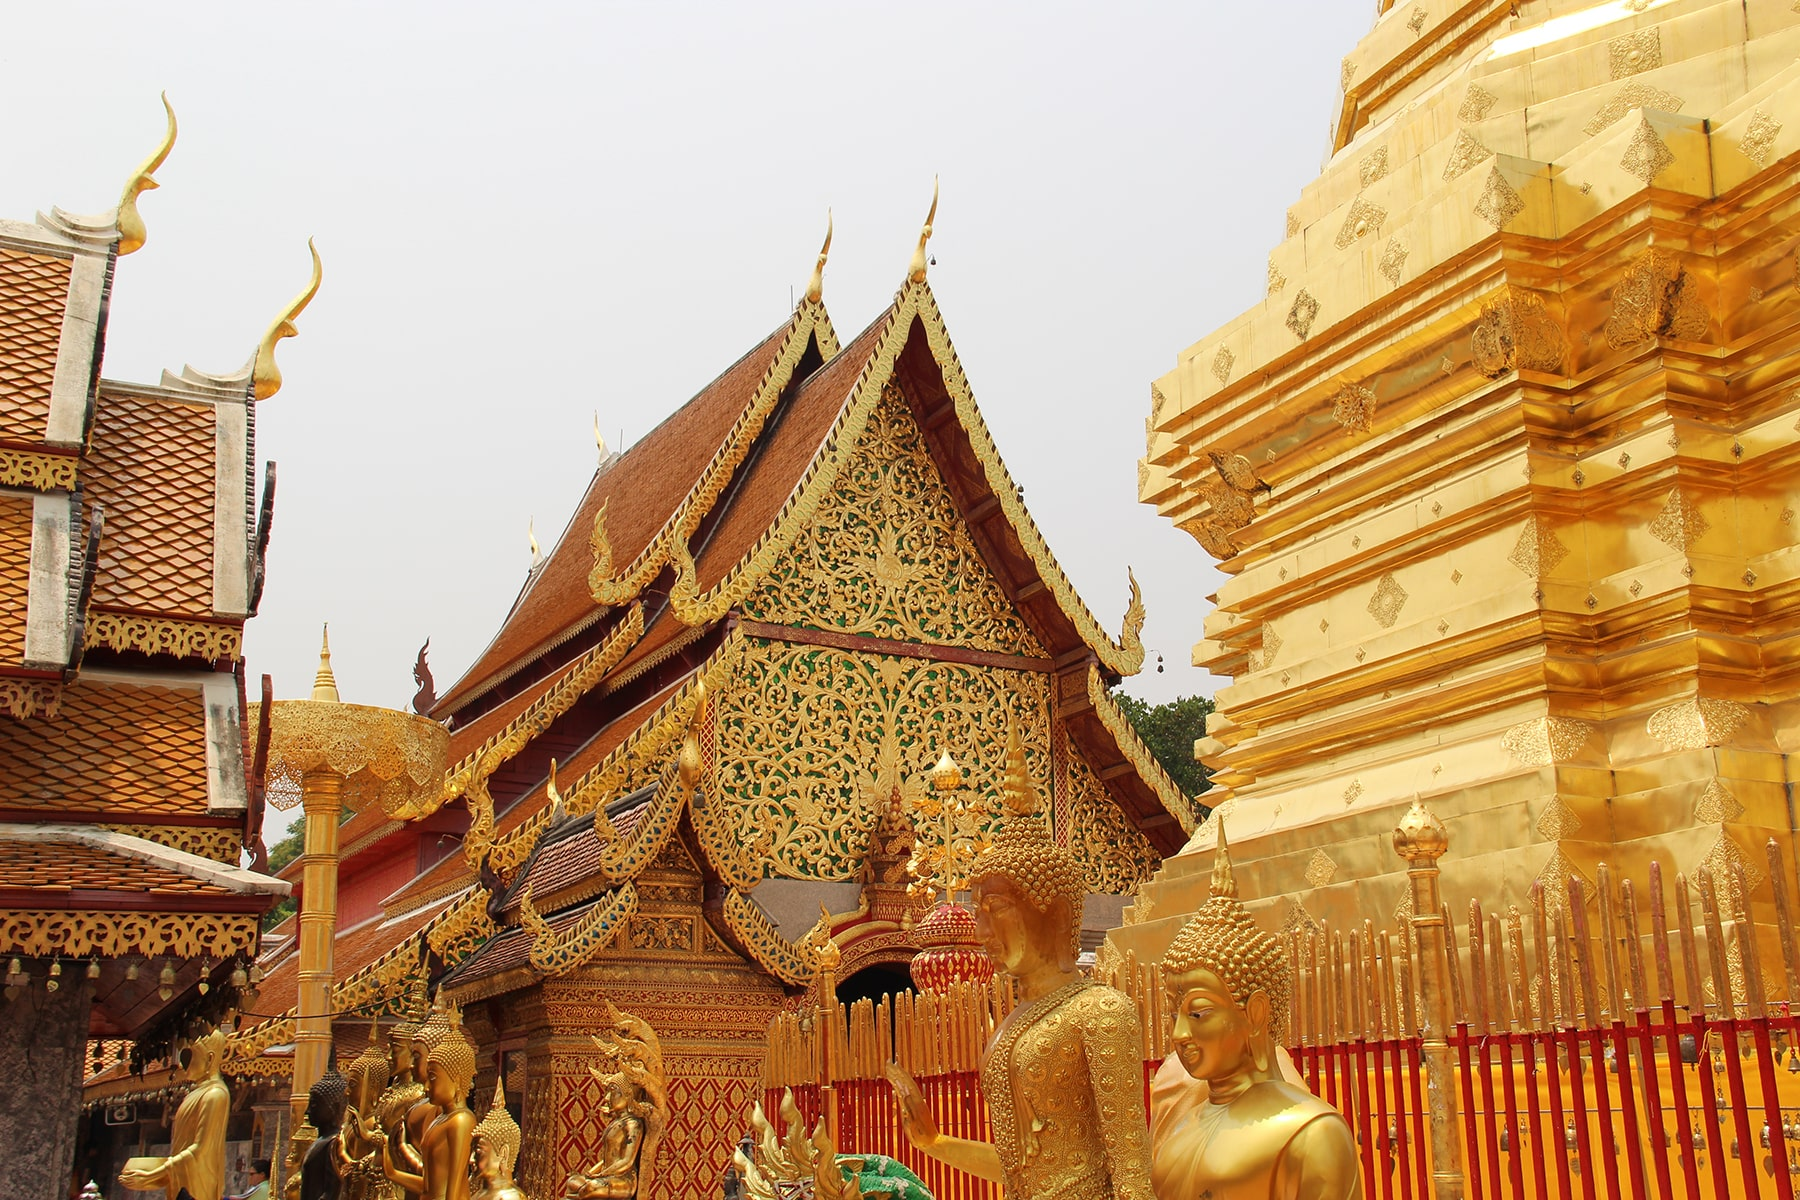 Golden glimpse of the Doi Suthep temple in Chiang Mai